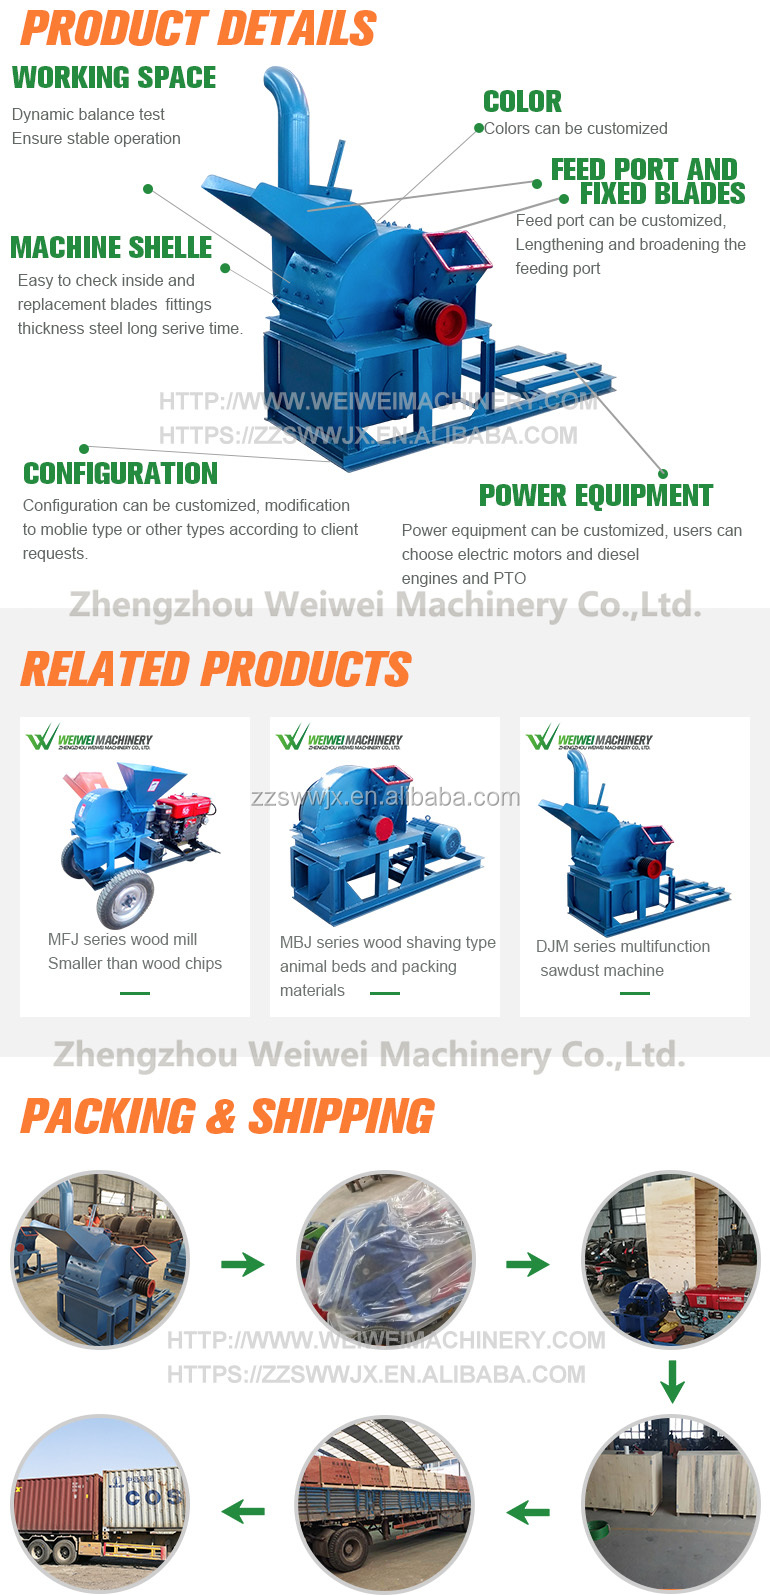 Weiwei machine 50 hp diesel engine 30-37kwrwood chipper malaysia  plywood frame planer sawdust making machinery